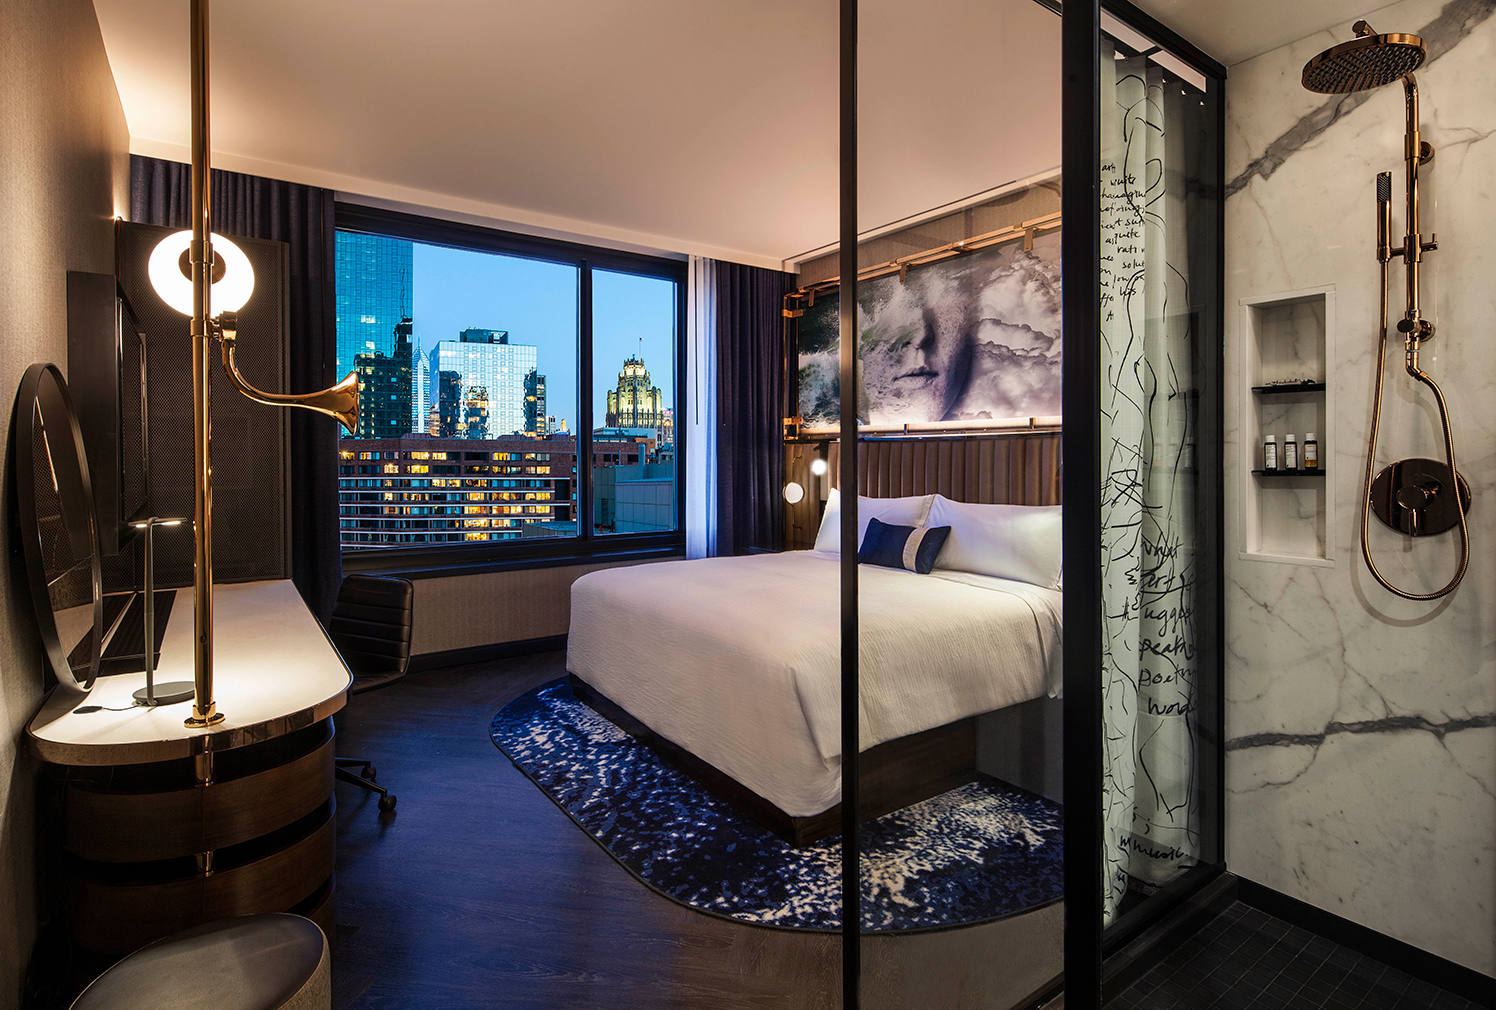 Chicago's Hotel EMC2 has science-themed interiors by ... Emmy Noether